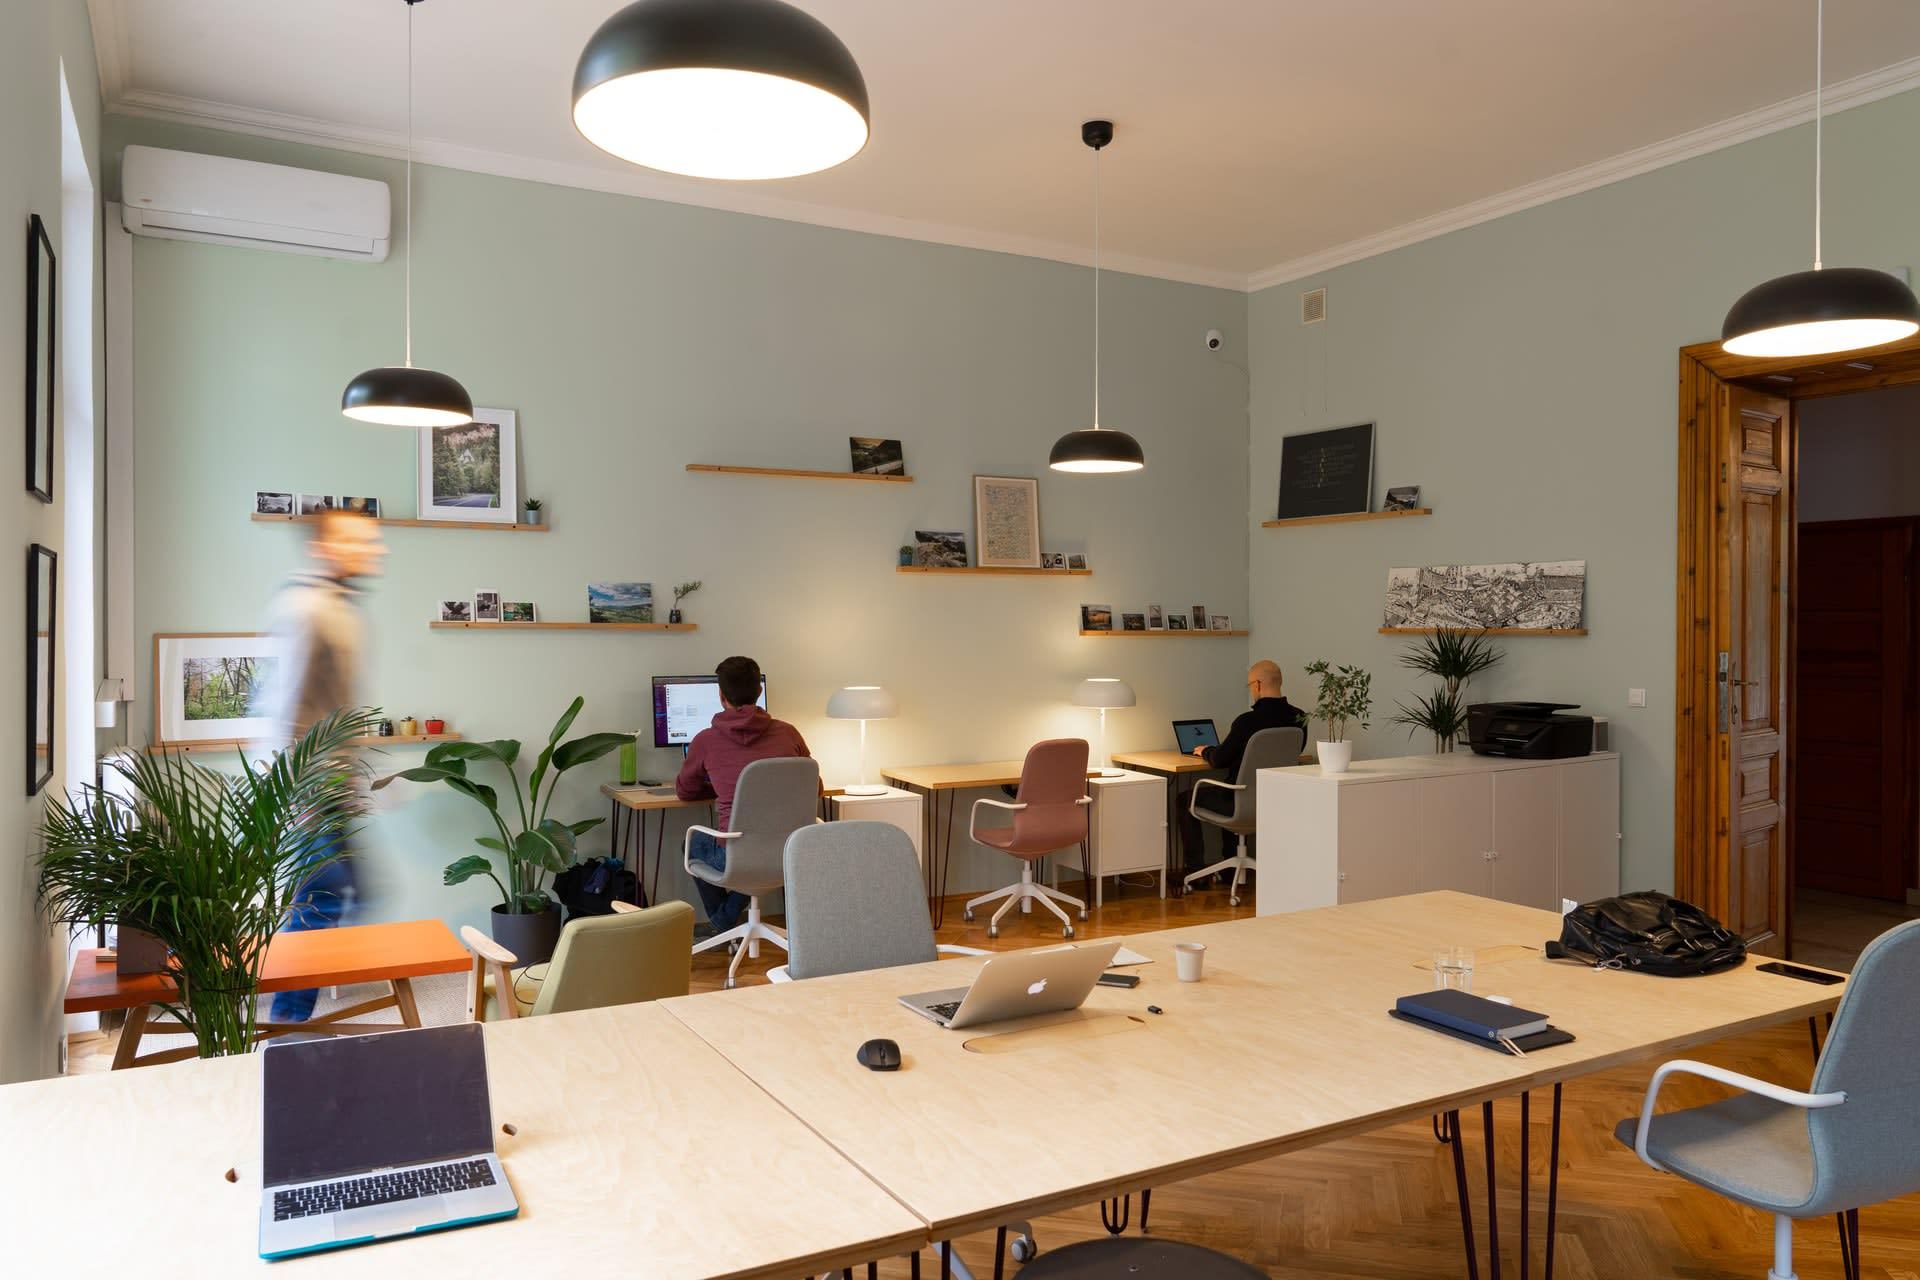 Is A Coworking Space Worth the Cost if You're Already Working From Home?